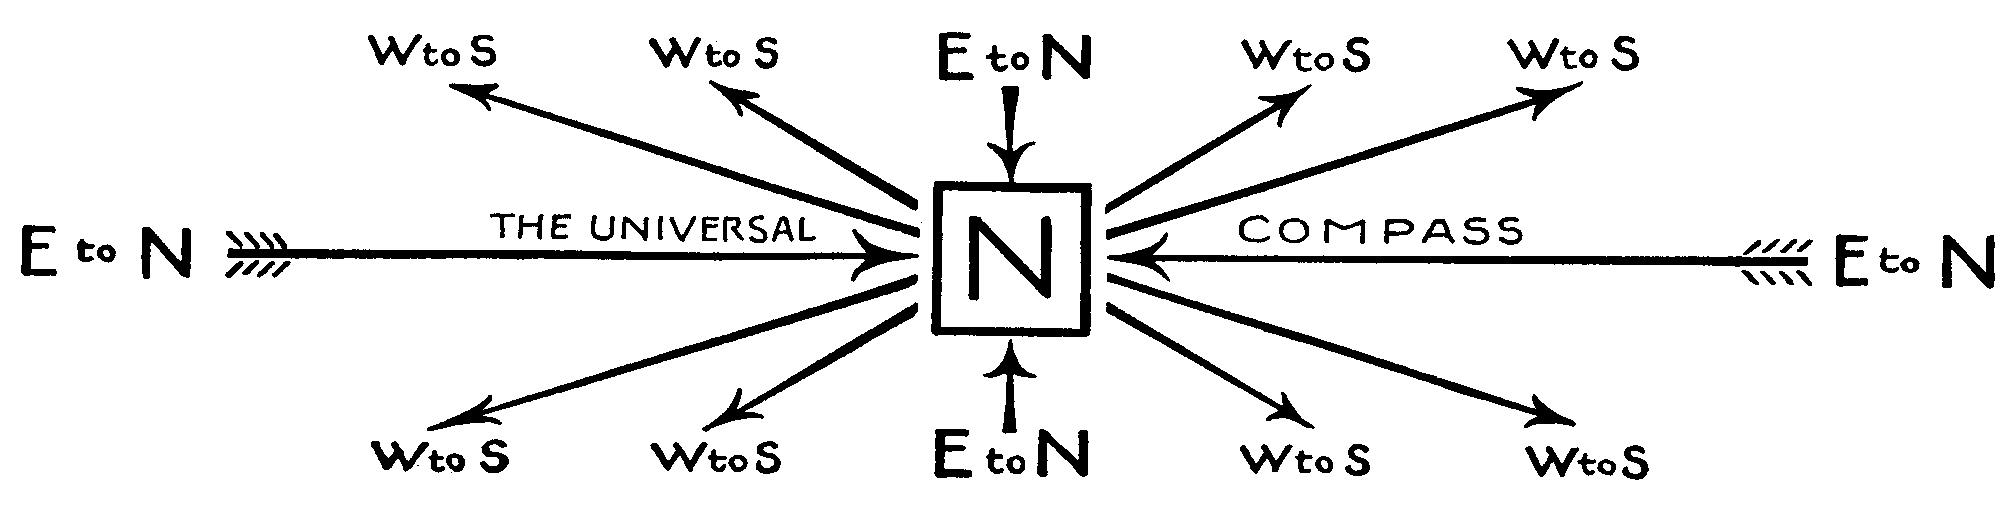 Cardinal Directions of Force and Energy Flows